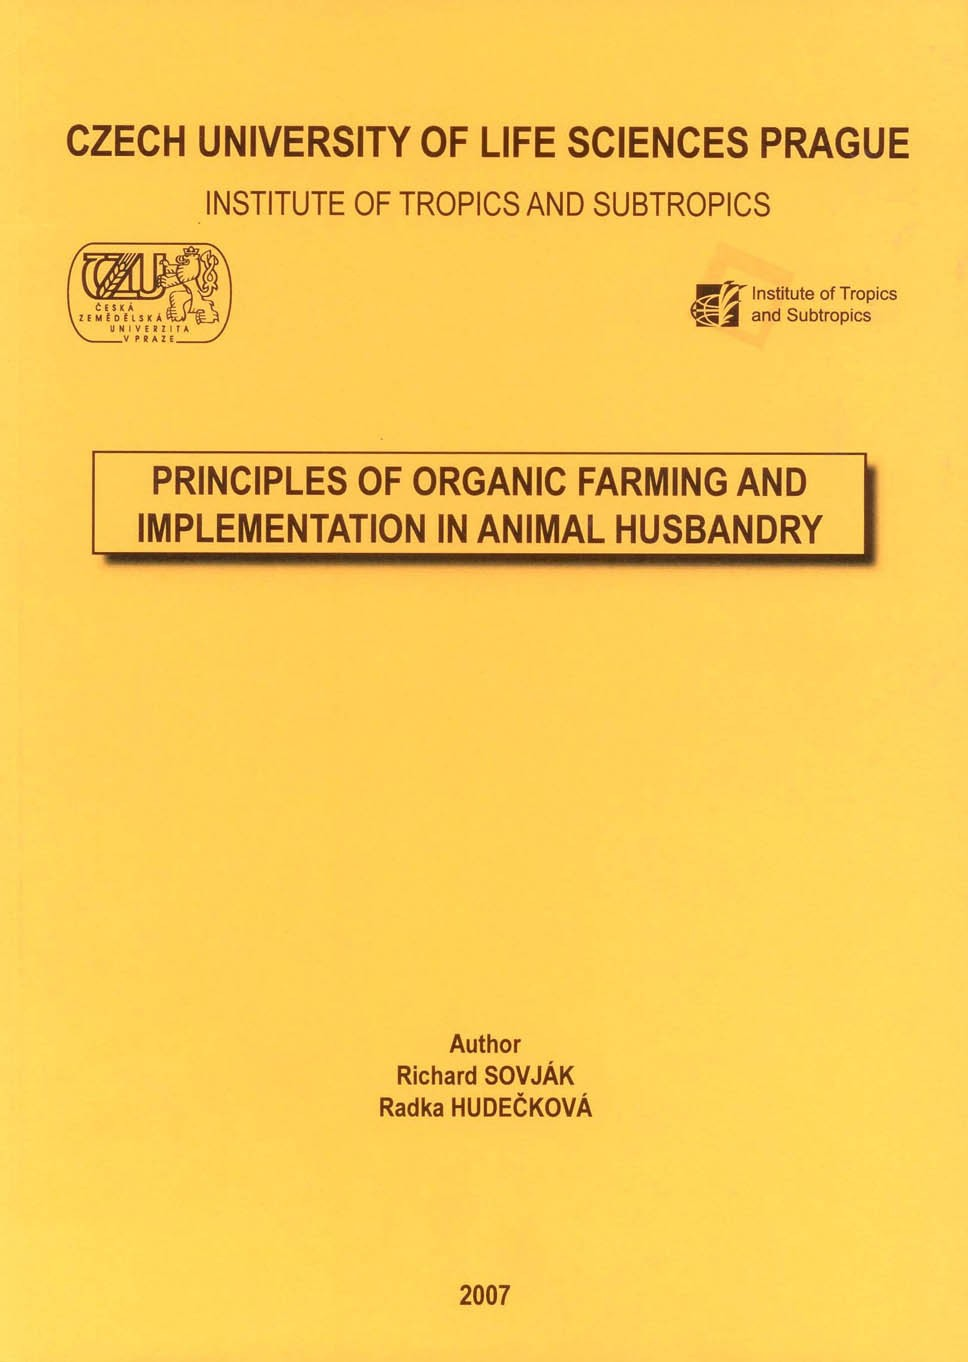 Principles of Organic Farming and Implementation in Animal Husbandry